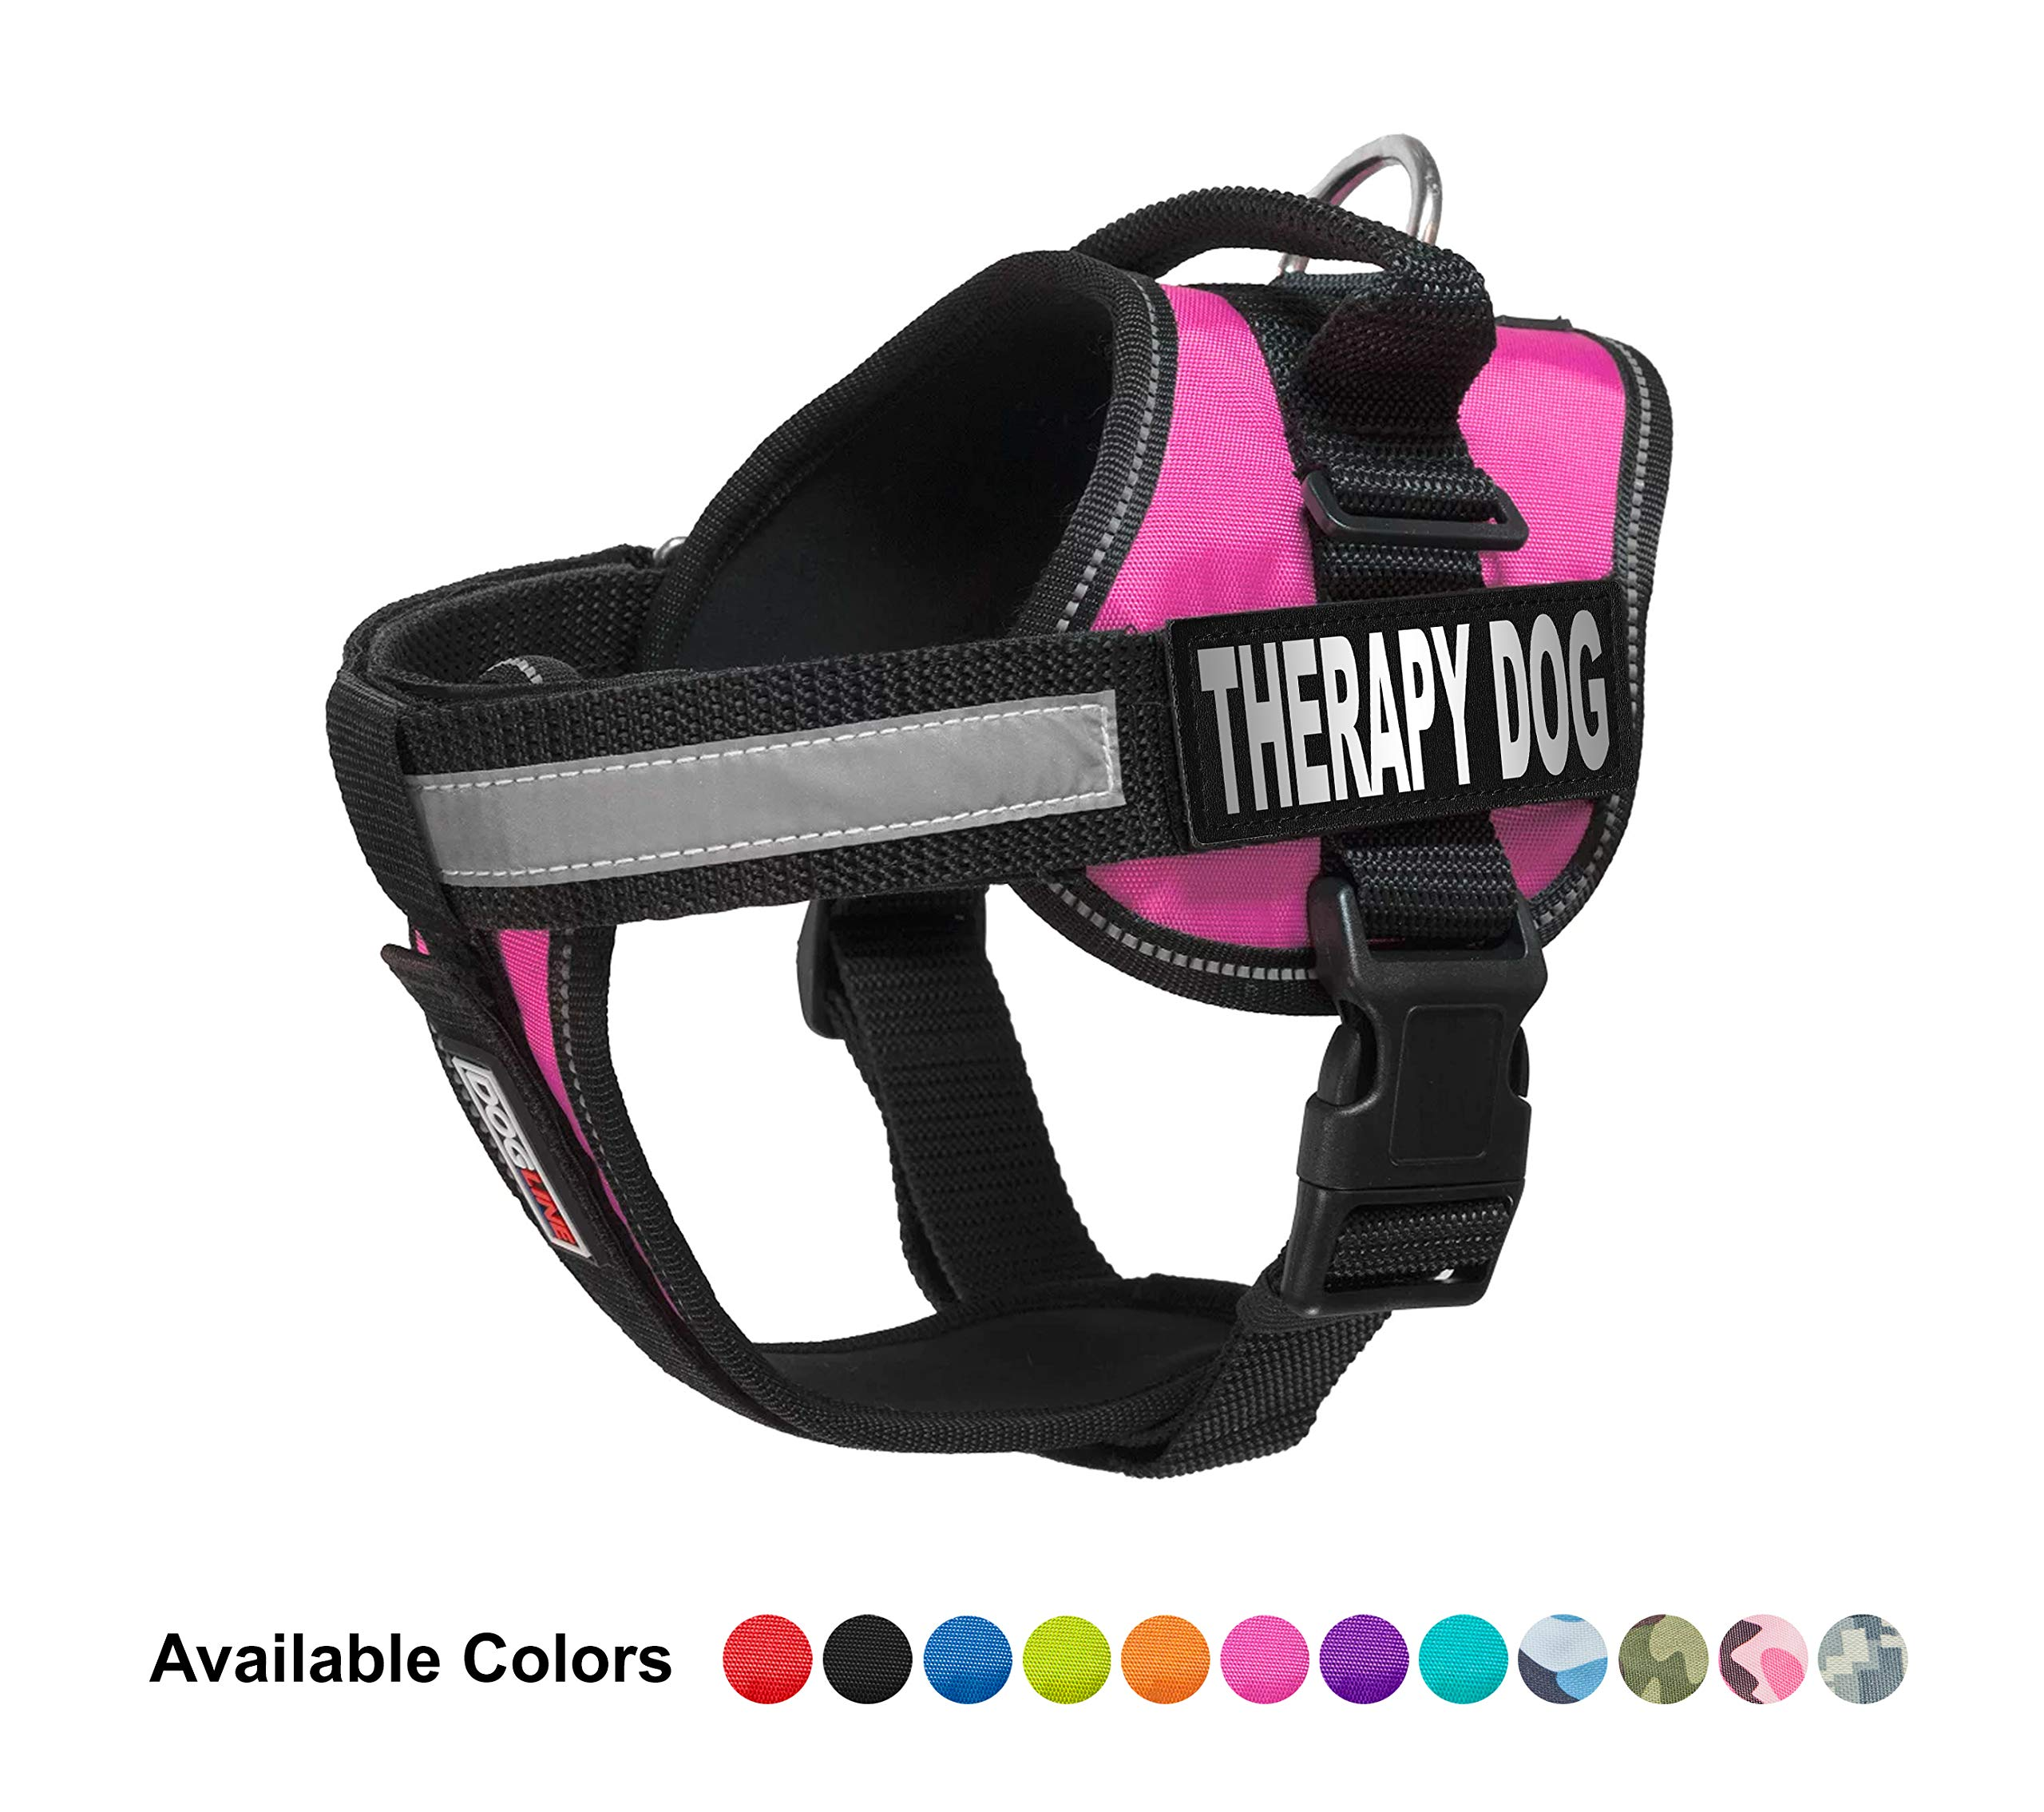 Dogline Vest Harness for Dogs and 2 Removable Therapy Dog Patches, Medium/22 to 30'', Pink